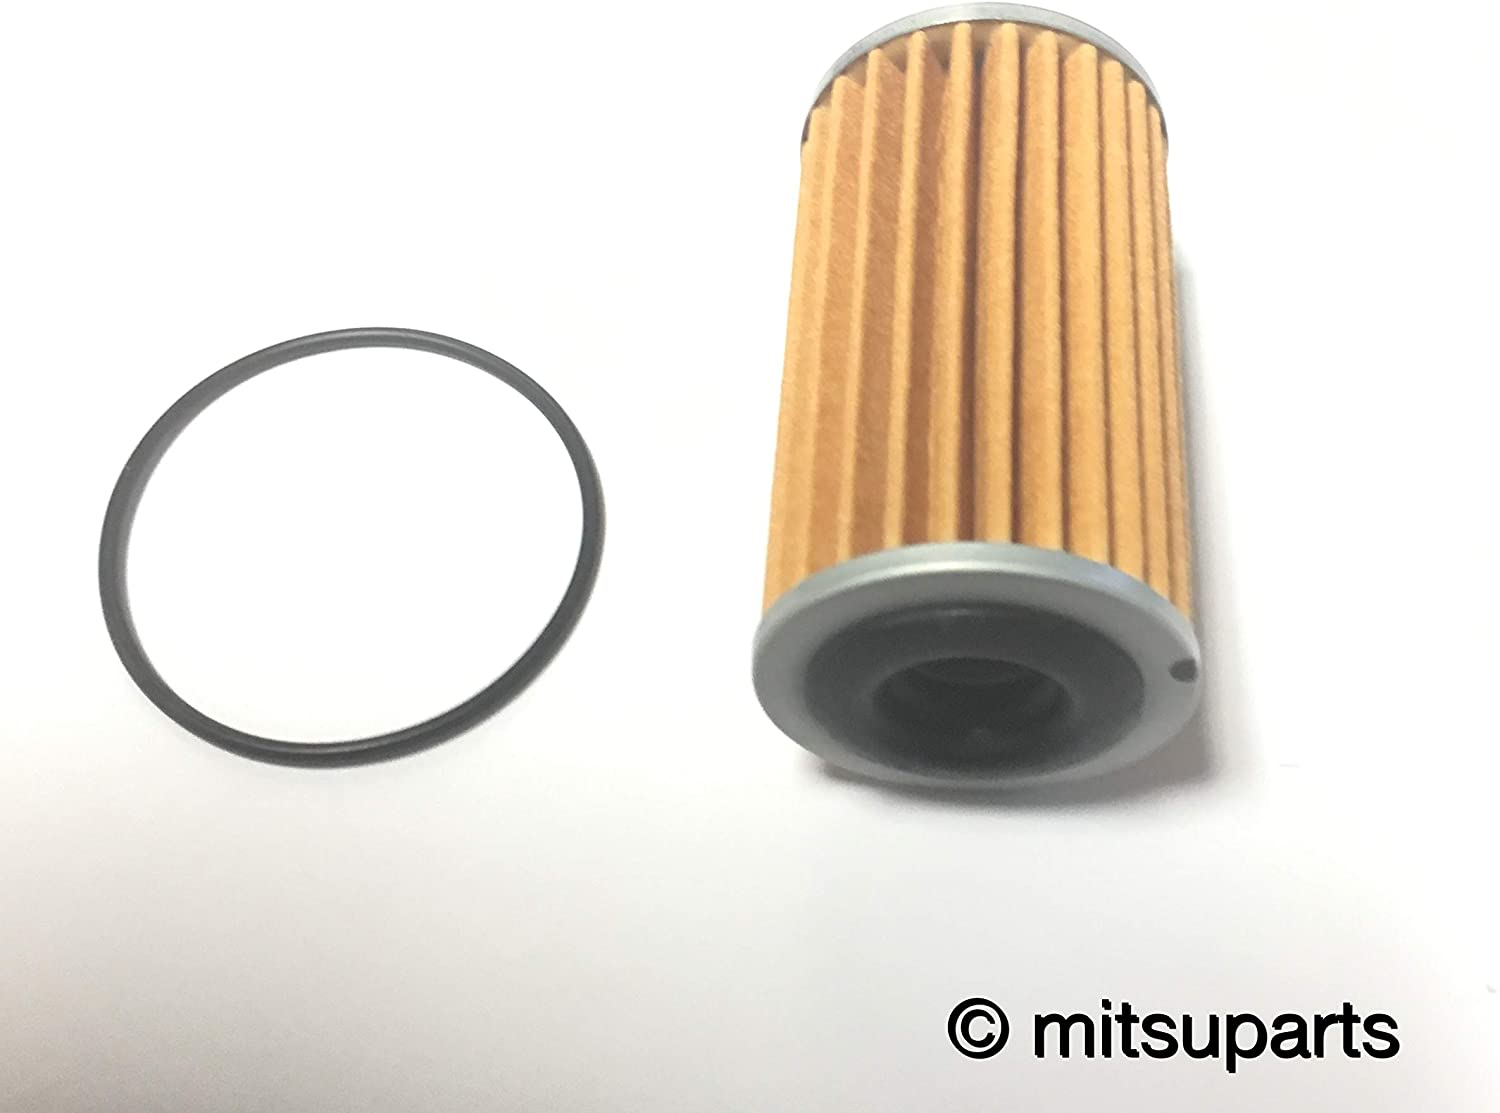 Transmission Filters 2921A007 2921A006 Mirage & G4 2015 2016 2017 ...